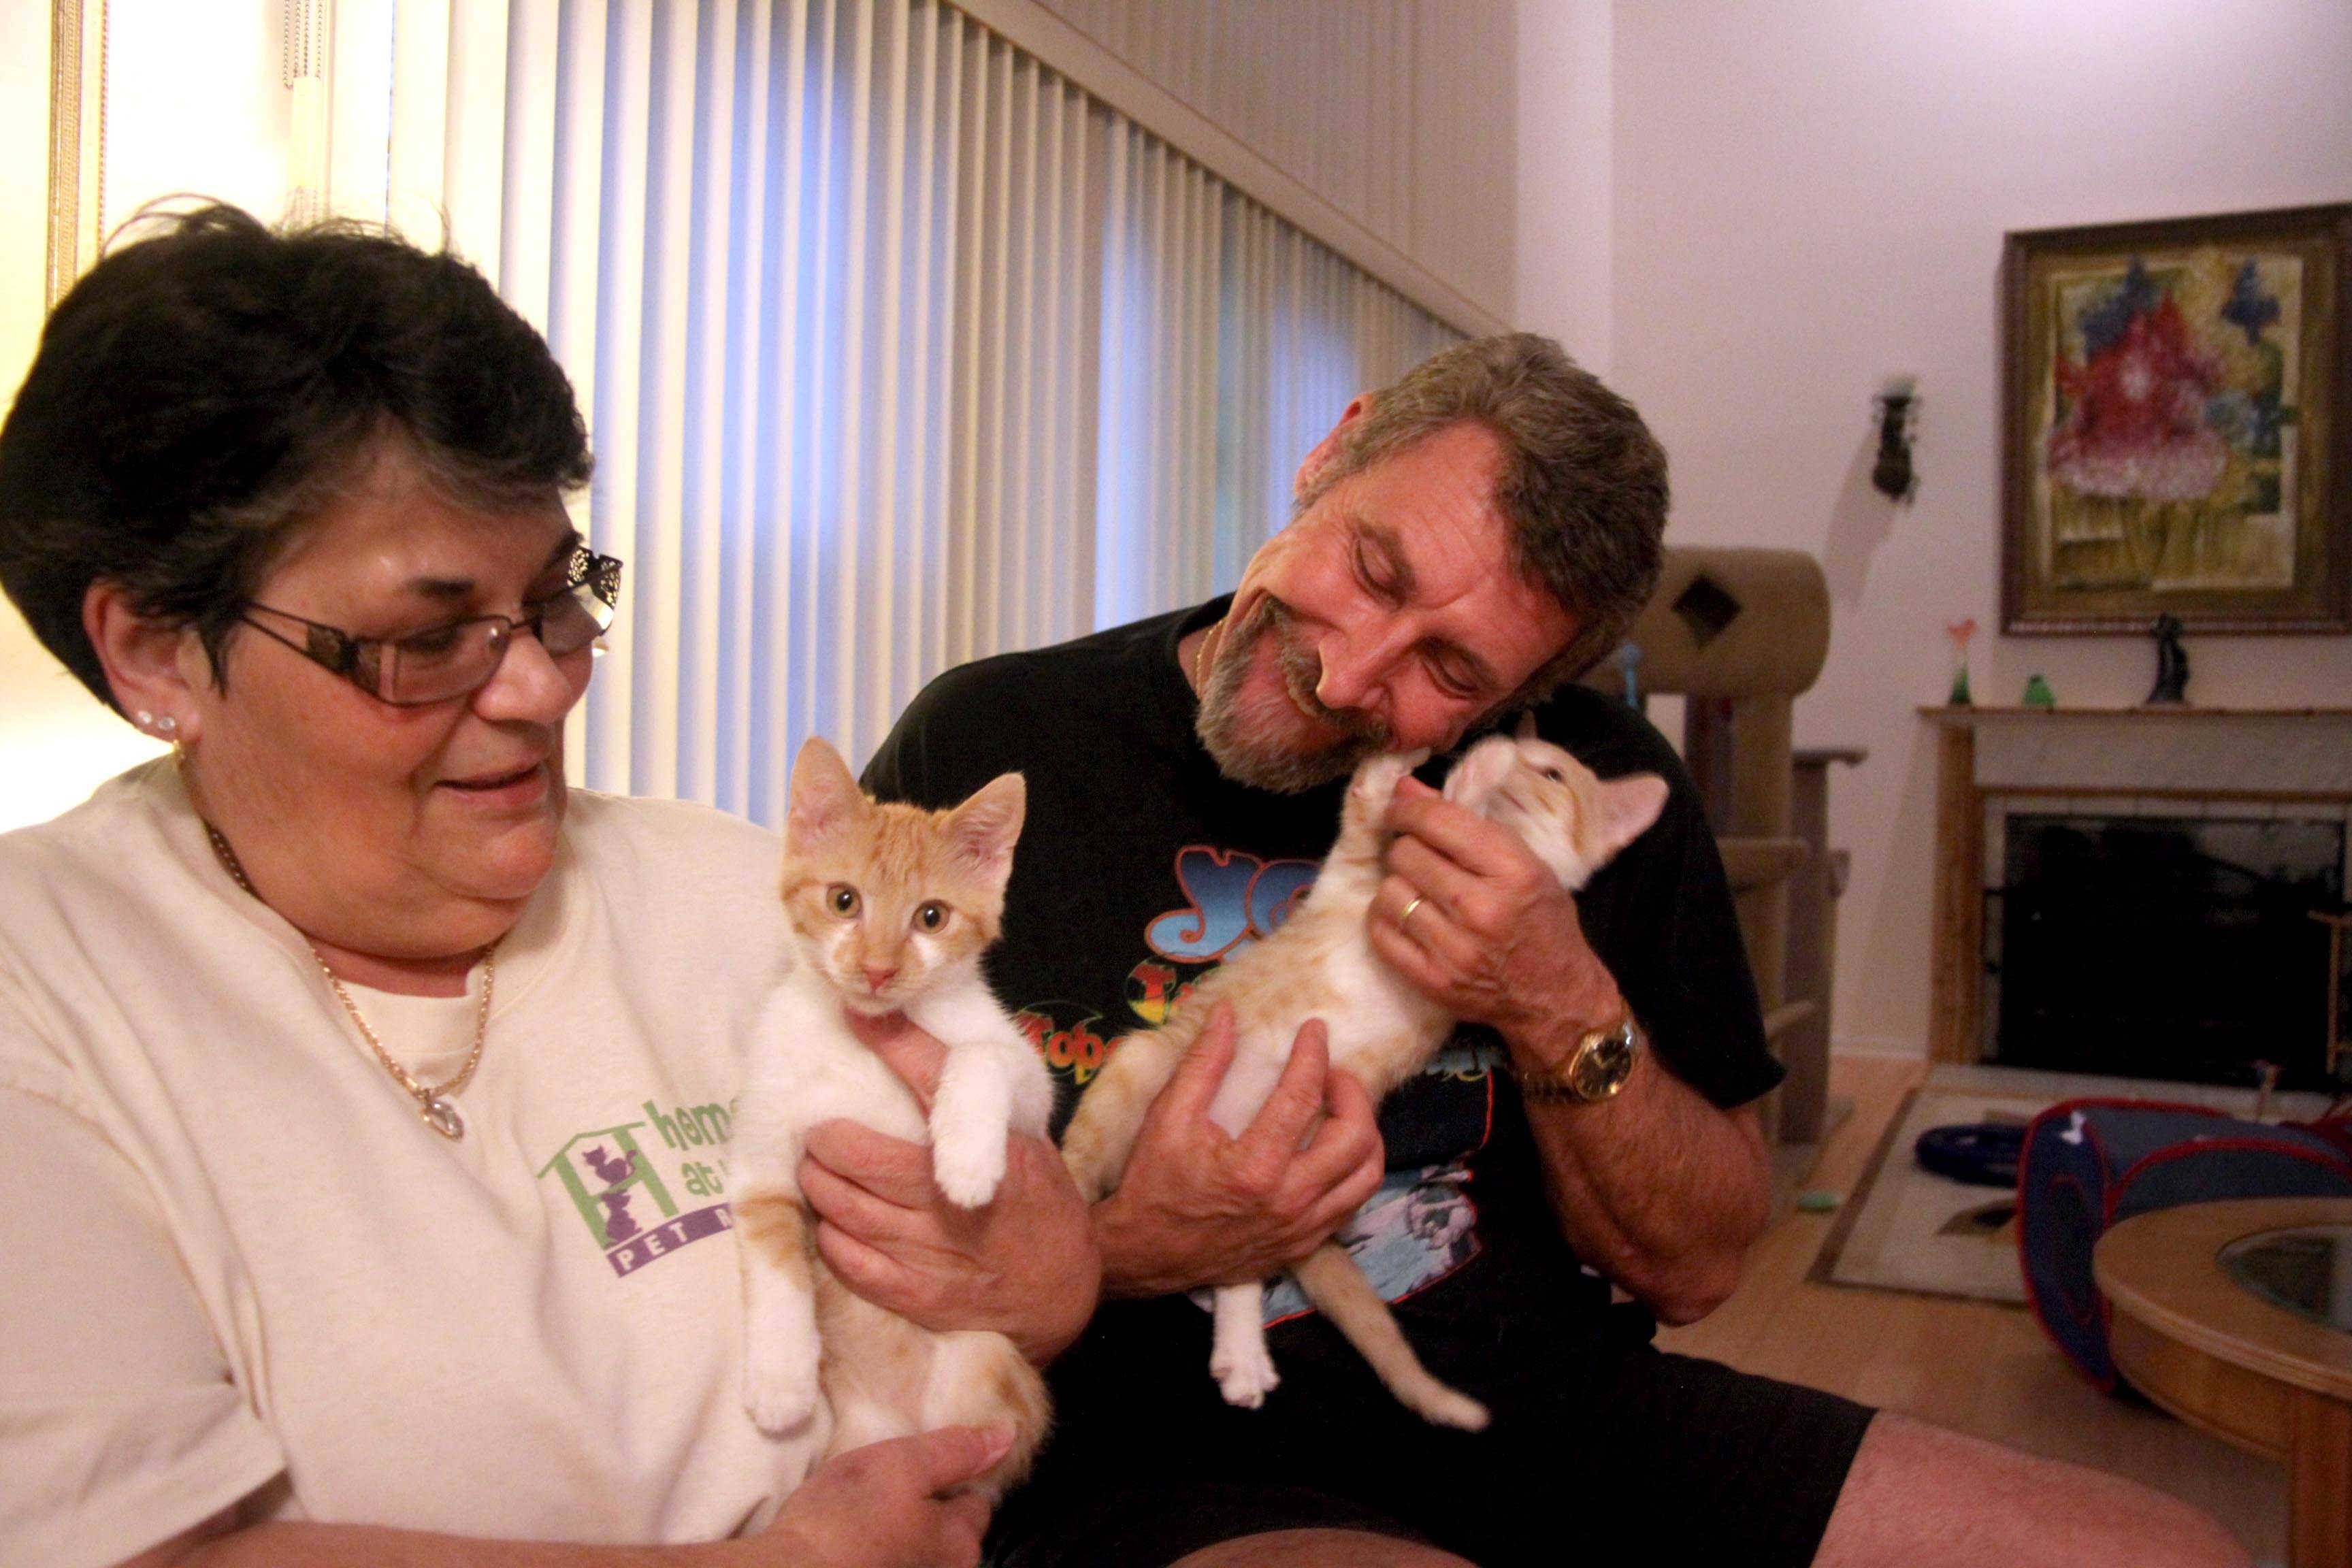 Peggy Aaland and her husband, Ken, of Hoffman Estates in July launched the Home At Last foster-based pet rescue. Peggy served in various capacities at the Strays Halfway House before starting Home At Last.